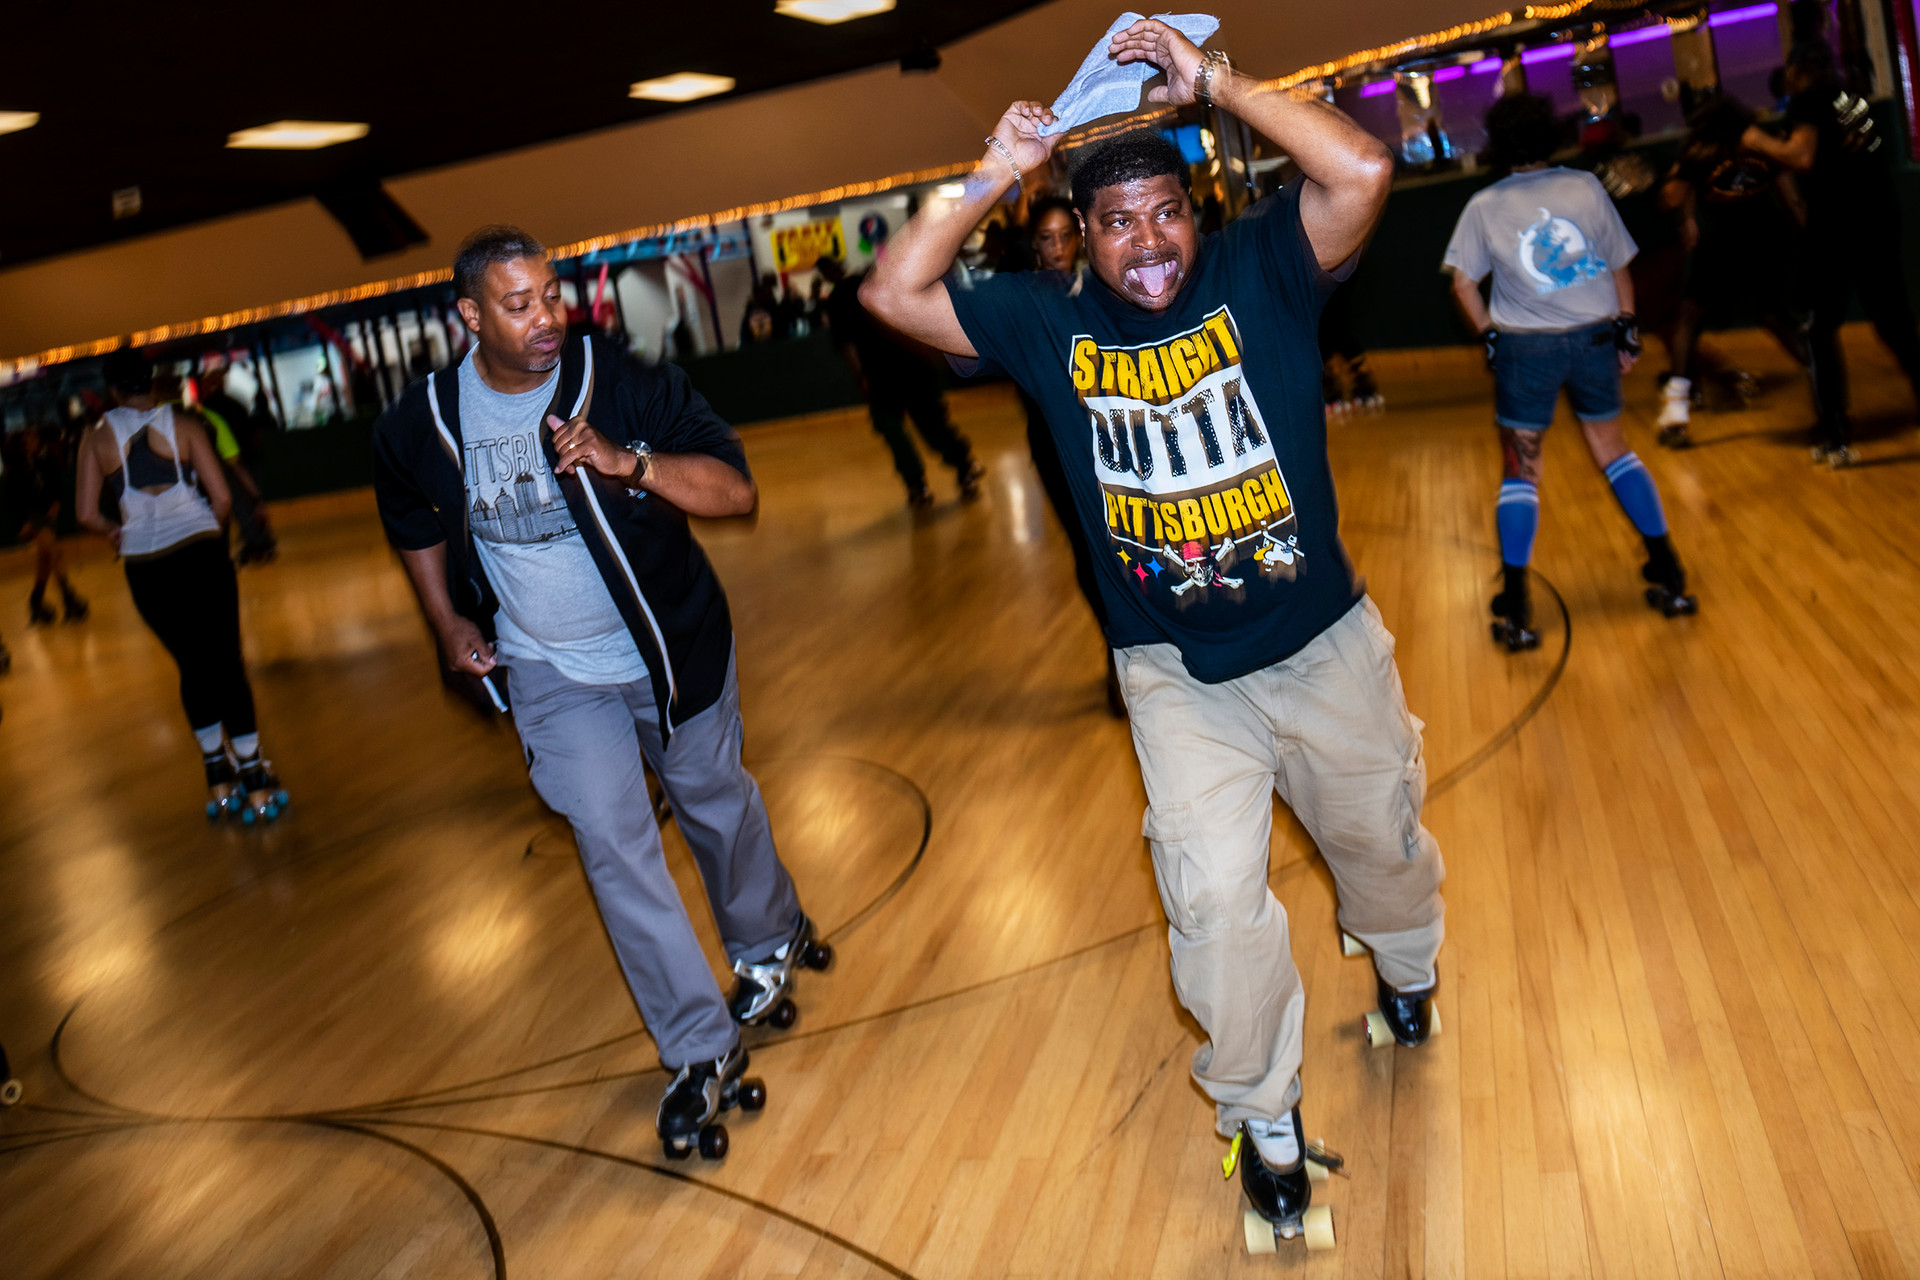 Tom Gross, of Homewood, left, and Dion Sims, of Homewood, right,  skate backwards, a signature Pittsburgh skate style, while skating at the Pittsburgh Steel City Rollers annual Spring Bling Skate Jam, Saturday, May 18, 2019, at Youngstown Skates in Youngstown Oh. The annual skate jam attracts skaters from various parts of the country.